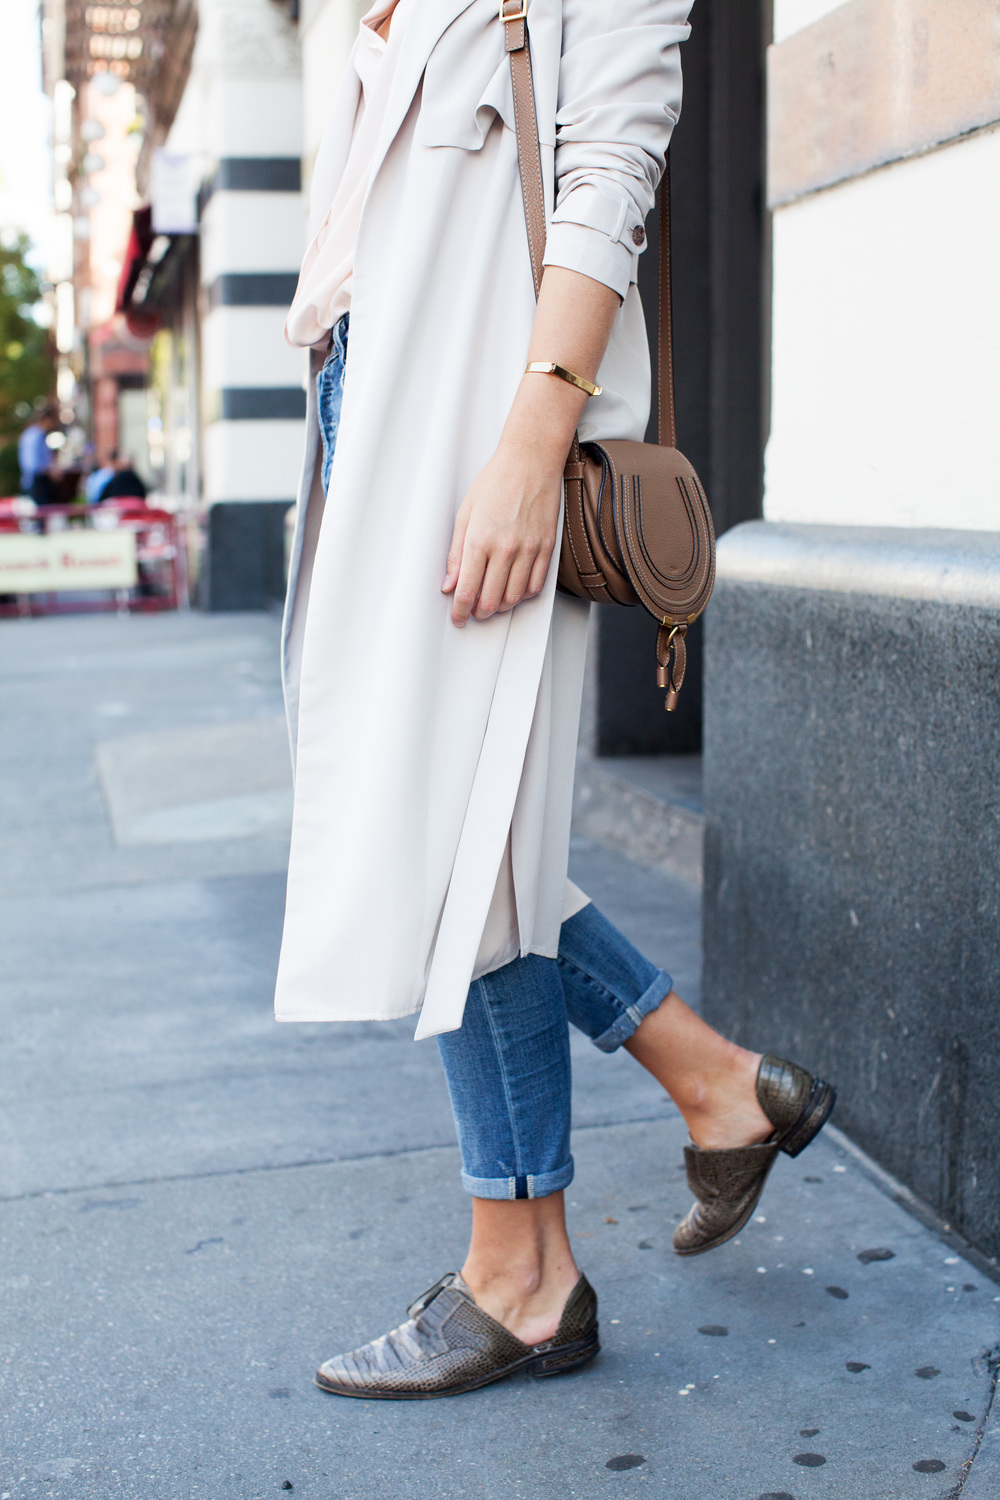 intermix beige trench, pink pajama silk top, boyfriend jeans, chloe marcie bag, freda salvador shoes